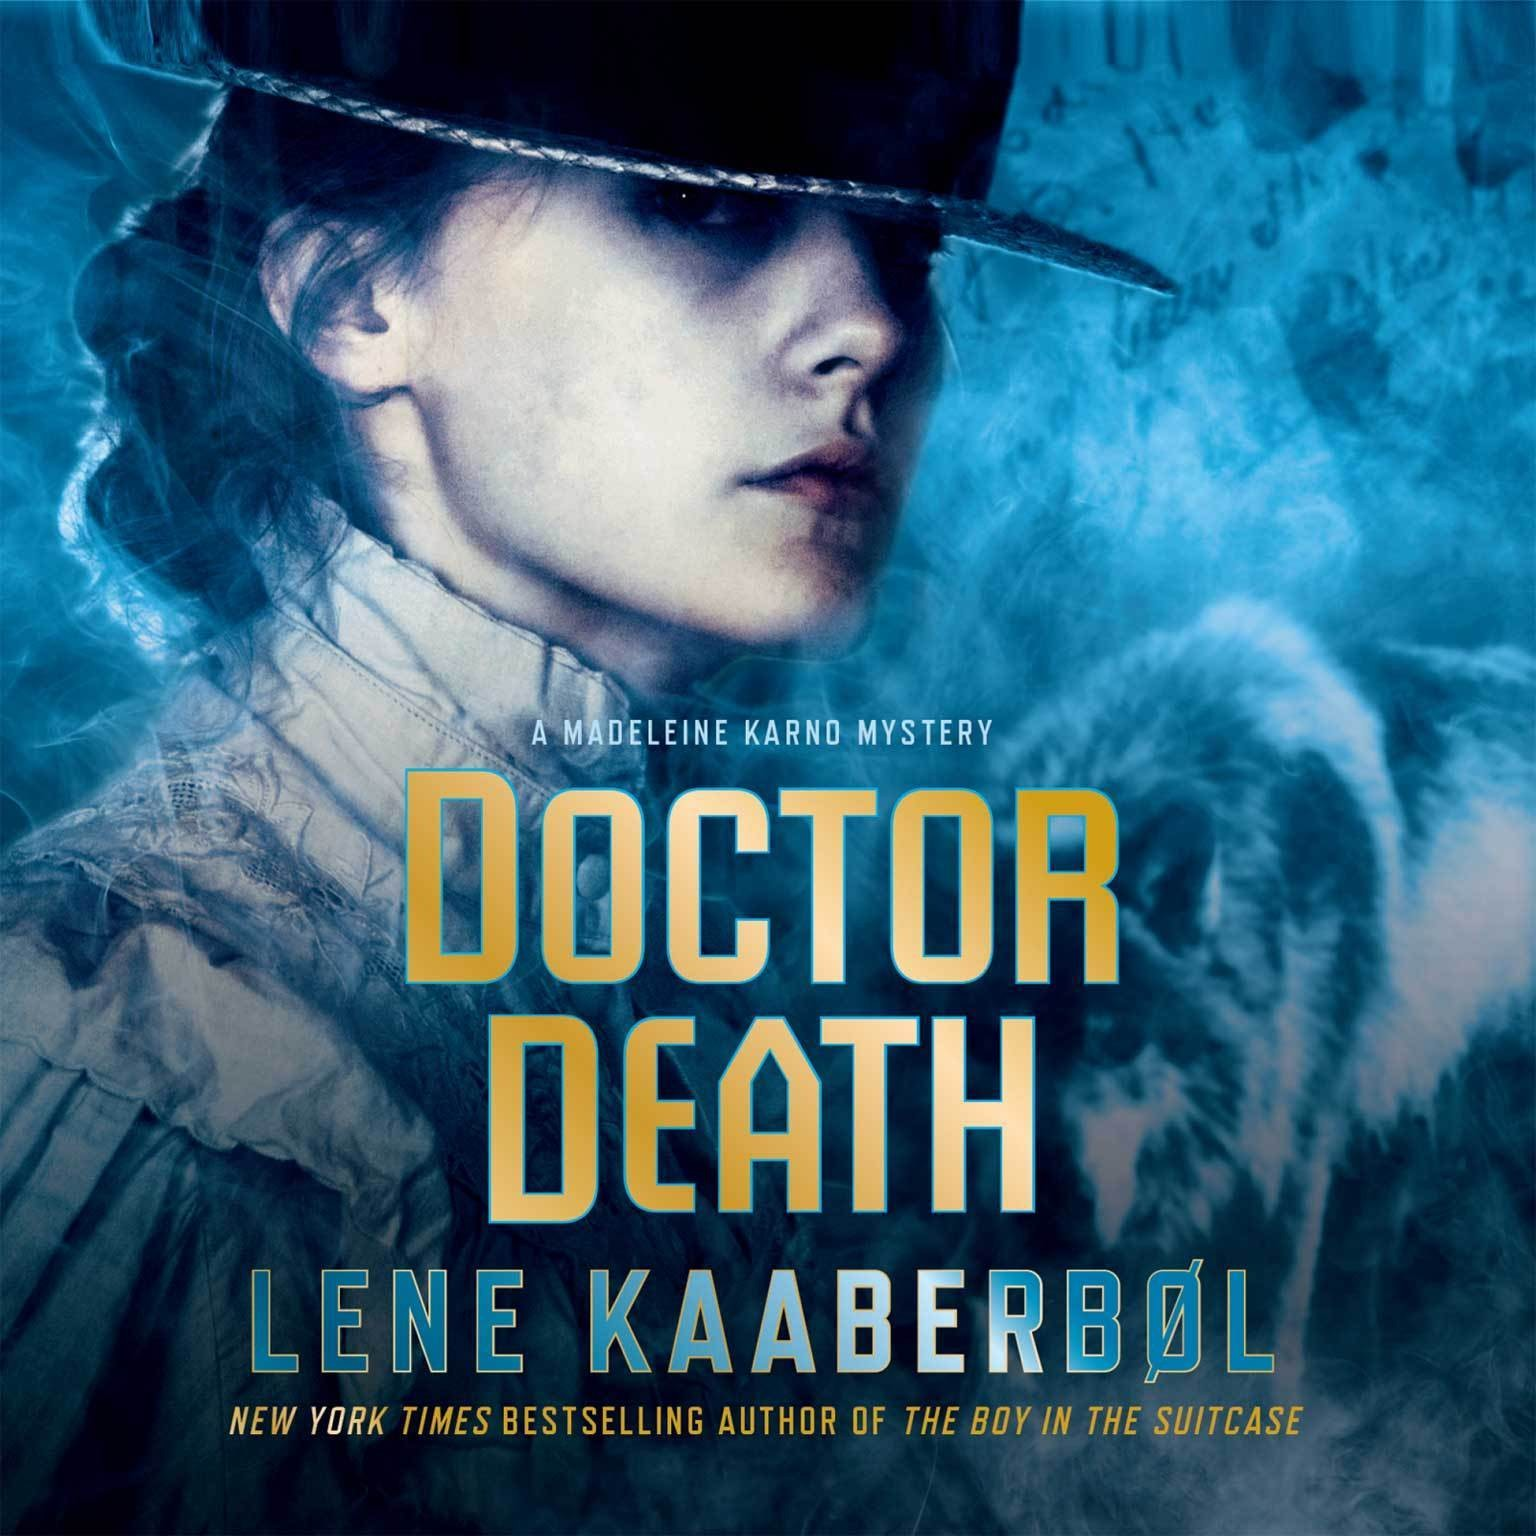 Printable Doctor Death: A Madeleine Karno Mystery Audiobook Cover Art